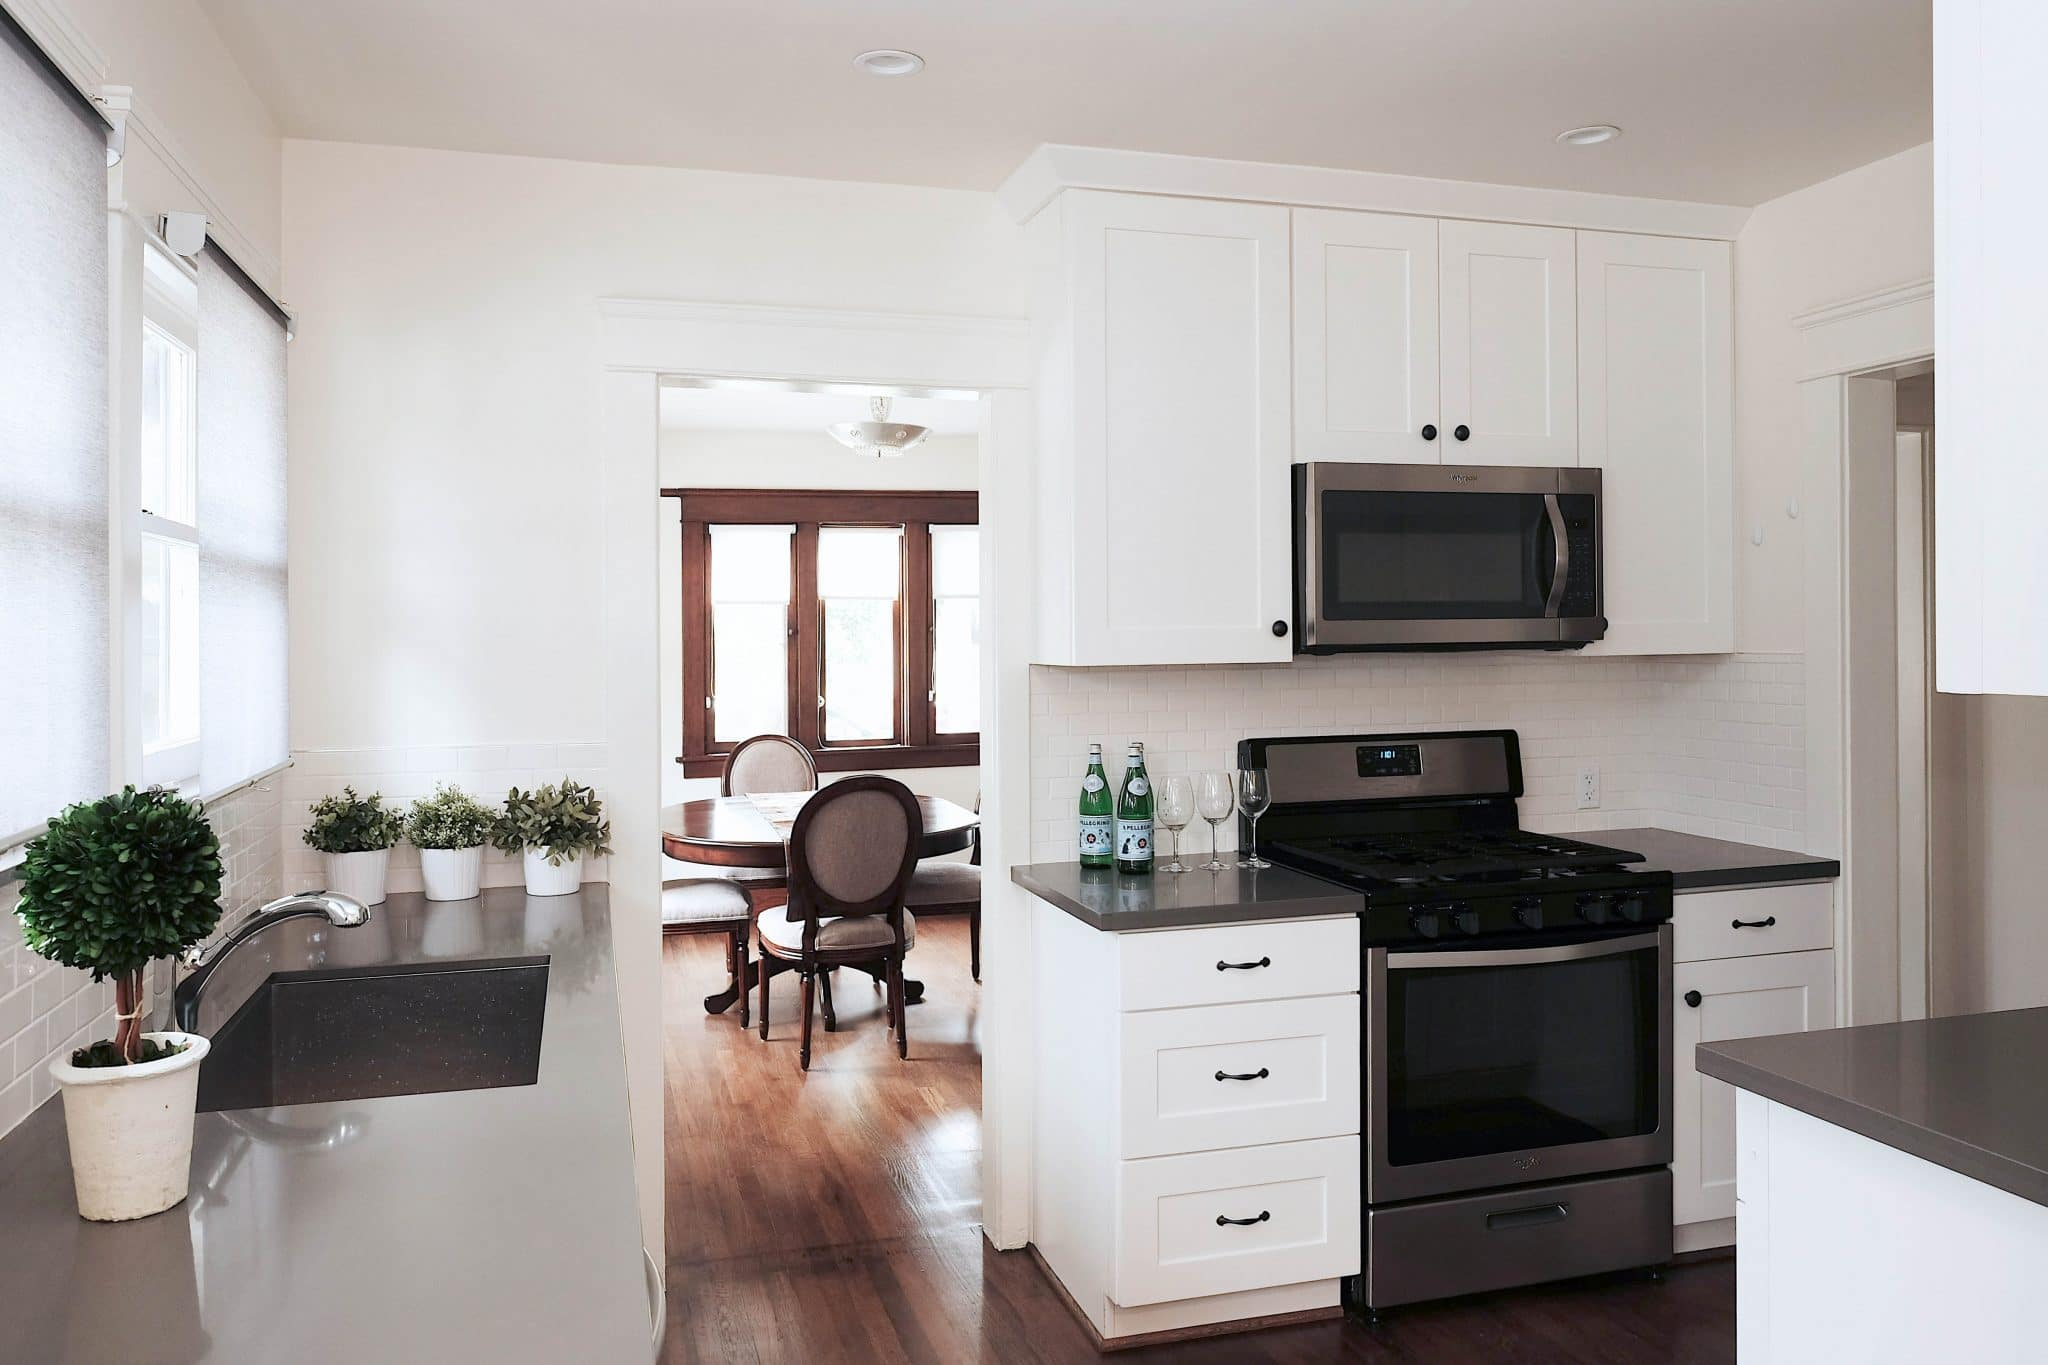 Kitchen Cabinets Manufacturers Cheap Buy Kitchen Cabinets Direct From The Manufacturer For